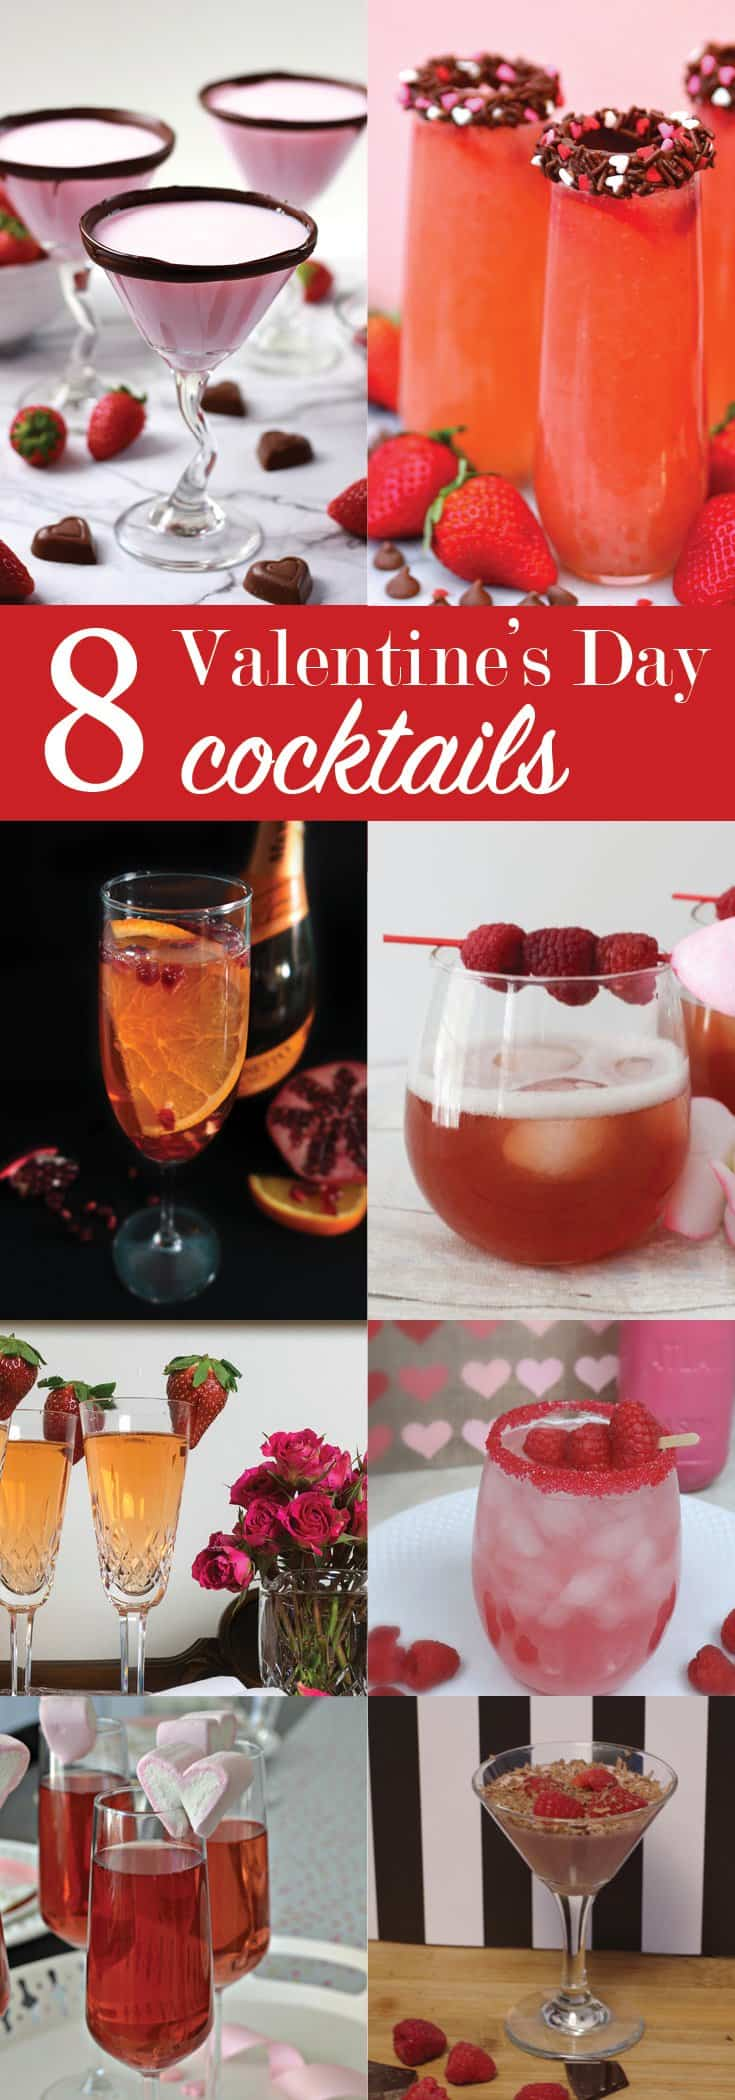 8 Valentine's Day cocktail recipes. Pink and red drinks for Valentine's Day.